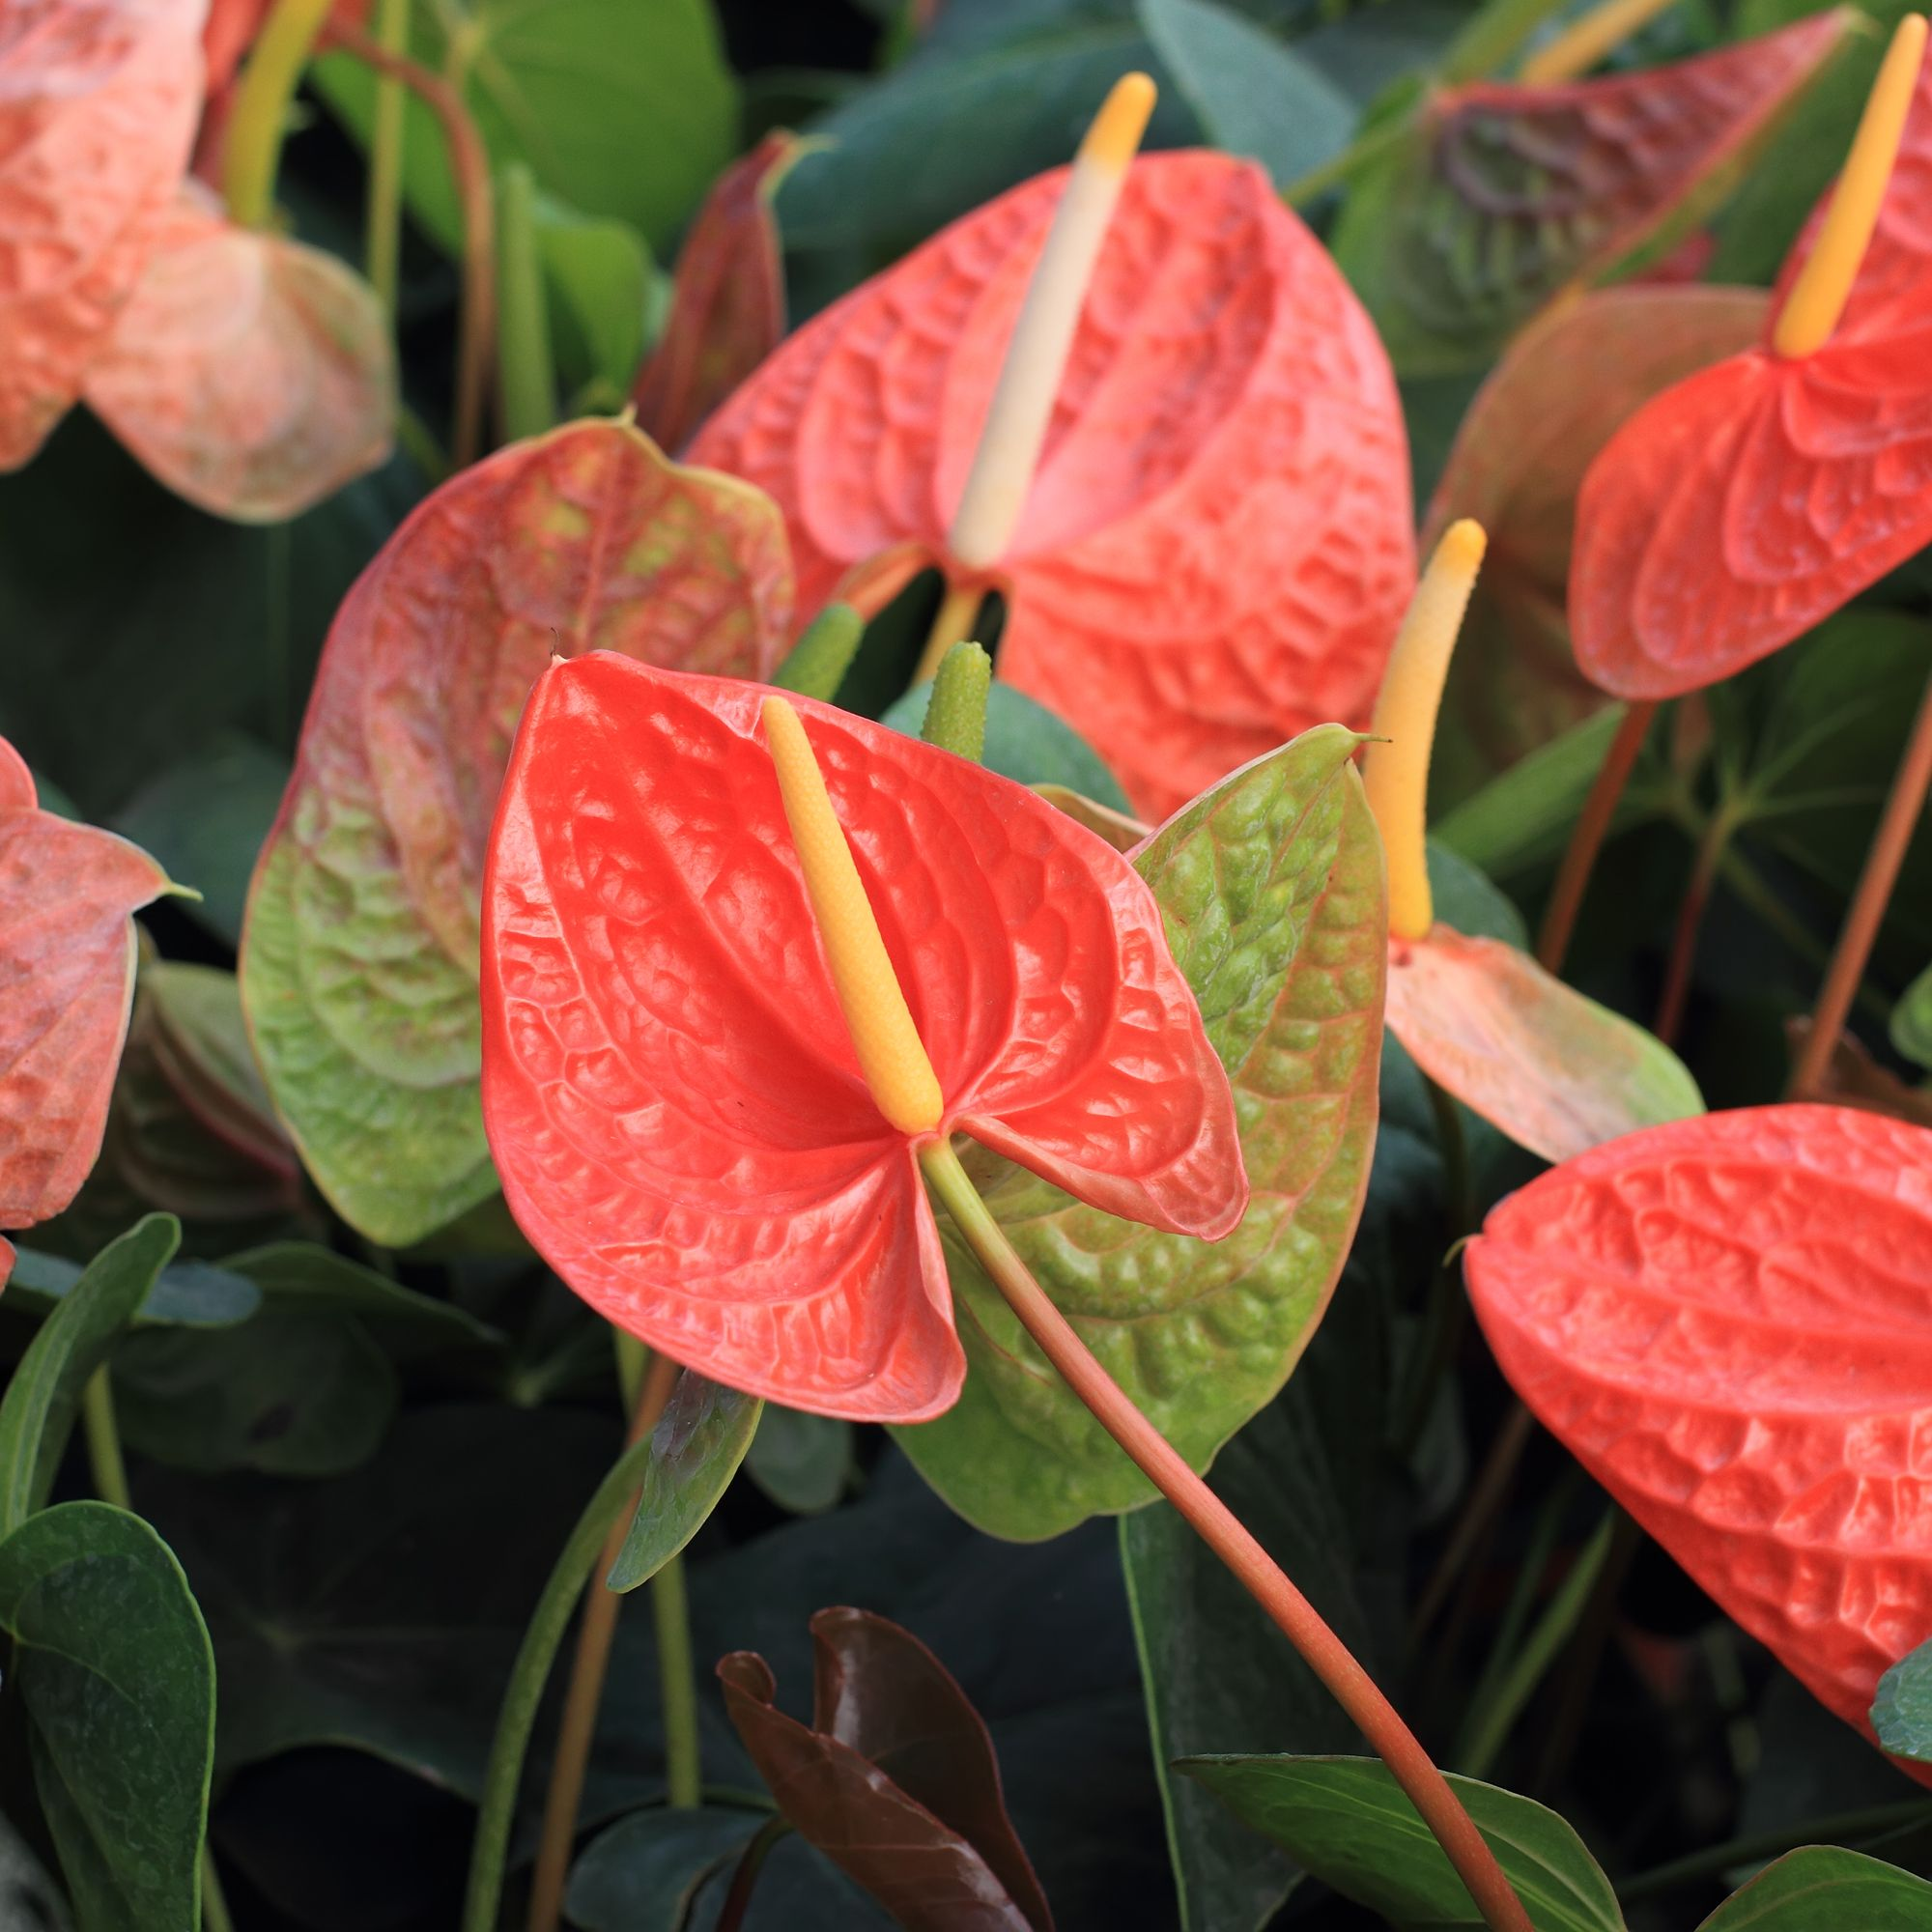 Anthurium Striking Glossy Green Elongated Heart Shaped Leaves With Red Pink Or White Shiny Heart Shaped Flowers Ma Evergreen Plants Anthurium Planting Herbs